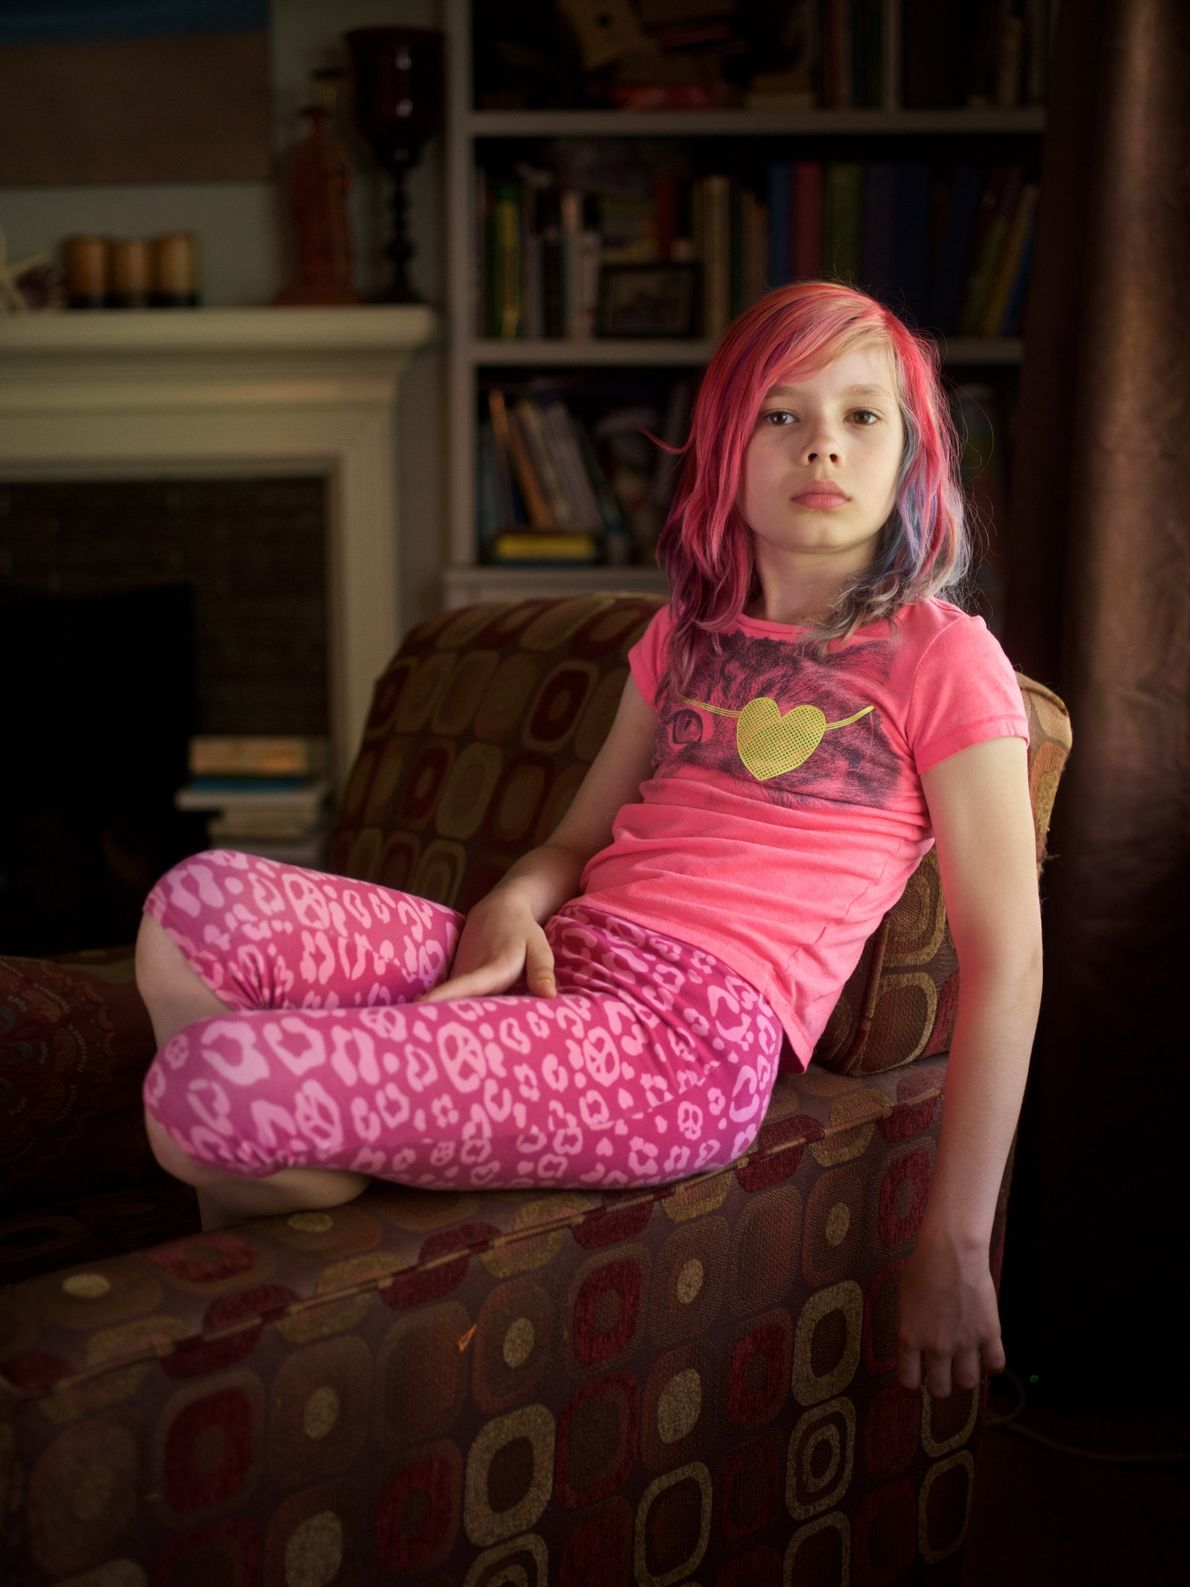 KANSAS CITY, Missouri New Zealand-born photographer Robin Hammond, who has won recognition for his images of LGBTQ ...